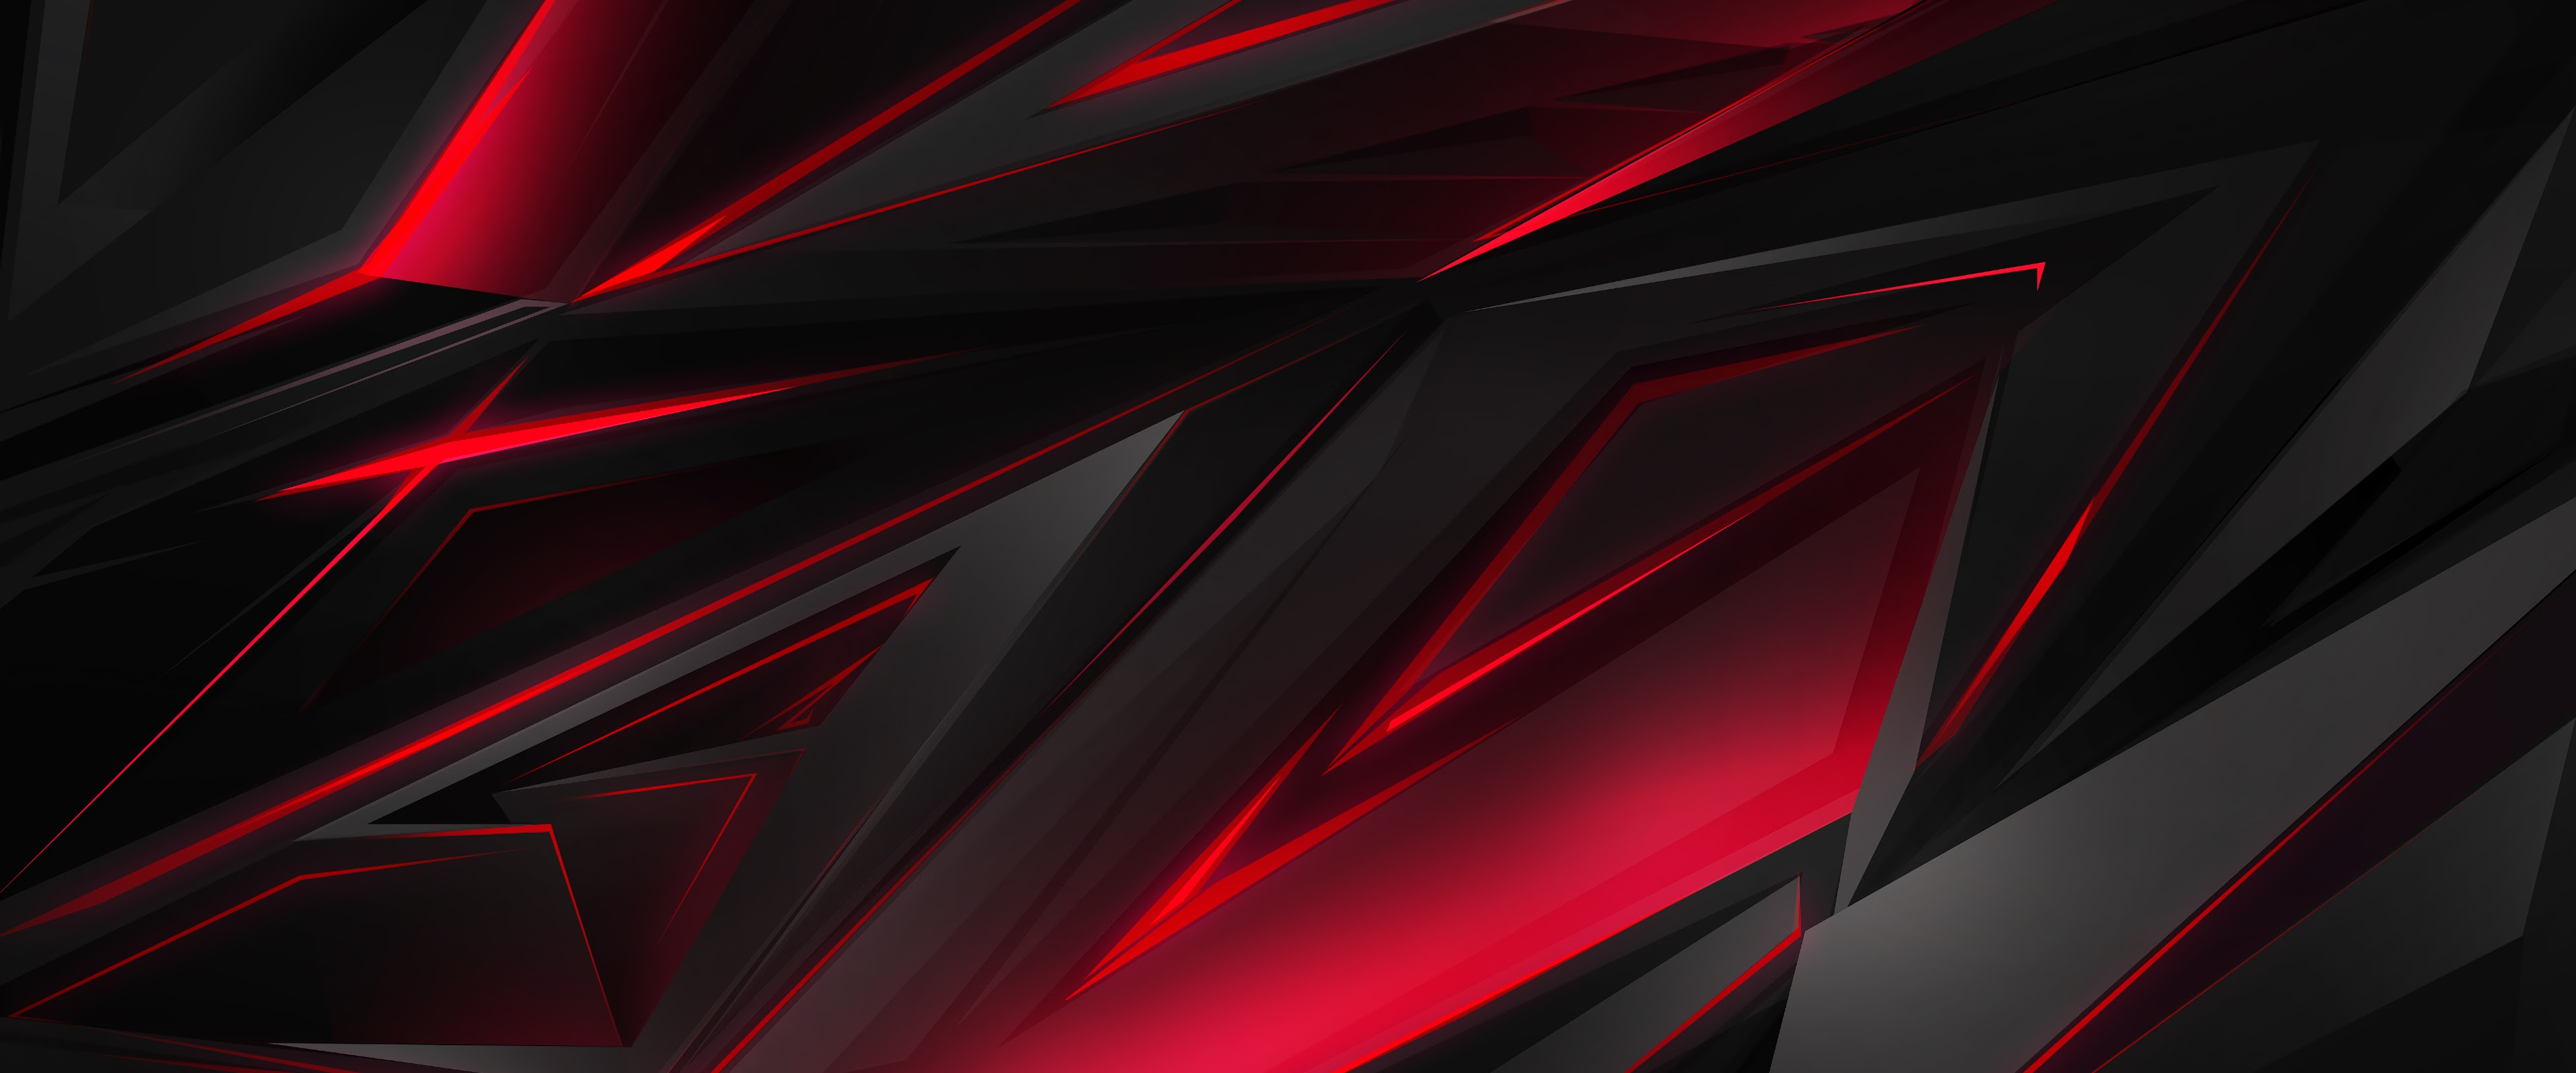 Black Red Abstract Polygon 3d 4k Wallpaper 45